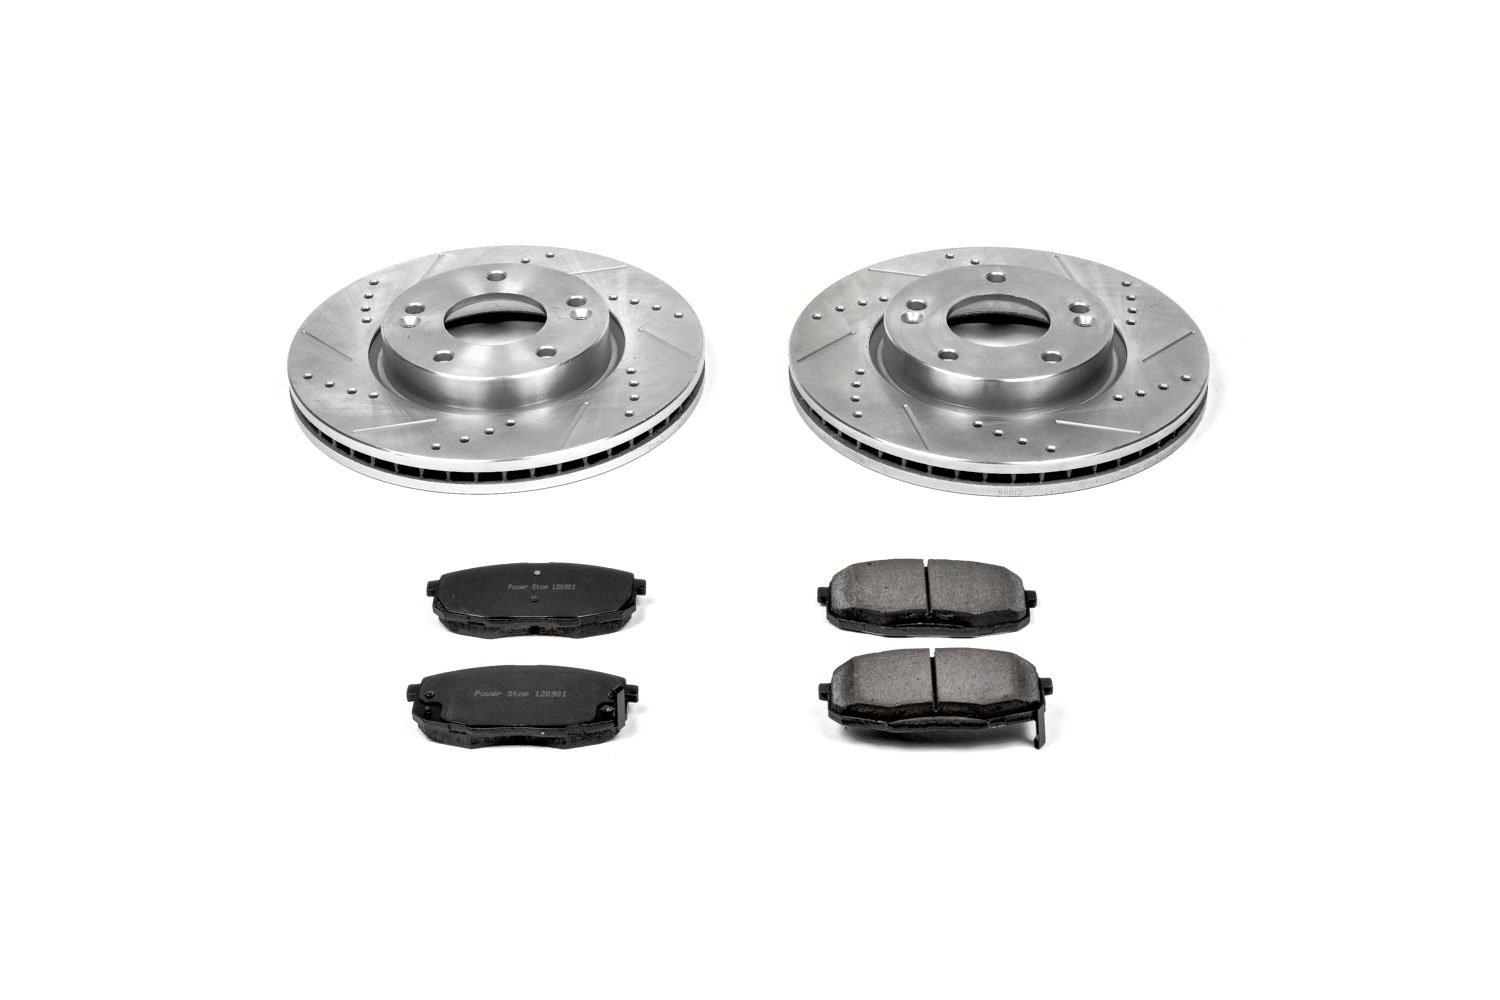 Power Stop K5366 Front Z23 Evolution Brake Kit with Drilled/Slotted Rotors and Ceramic Brake Pads